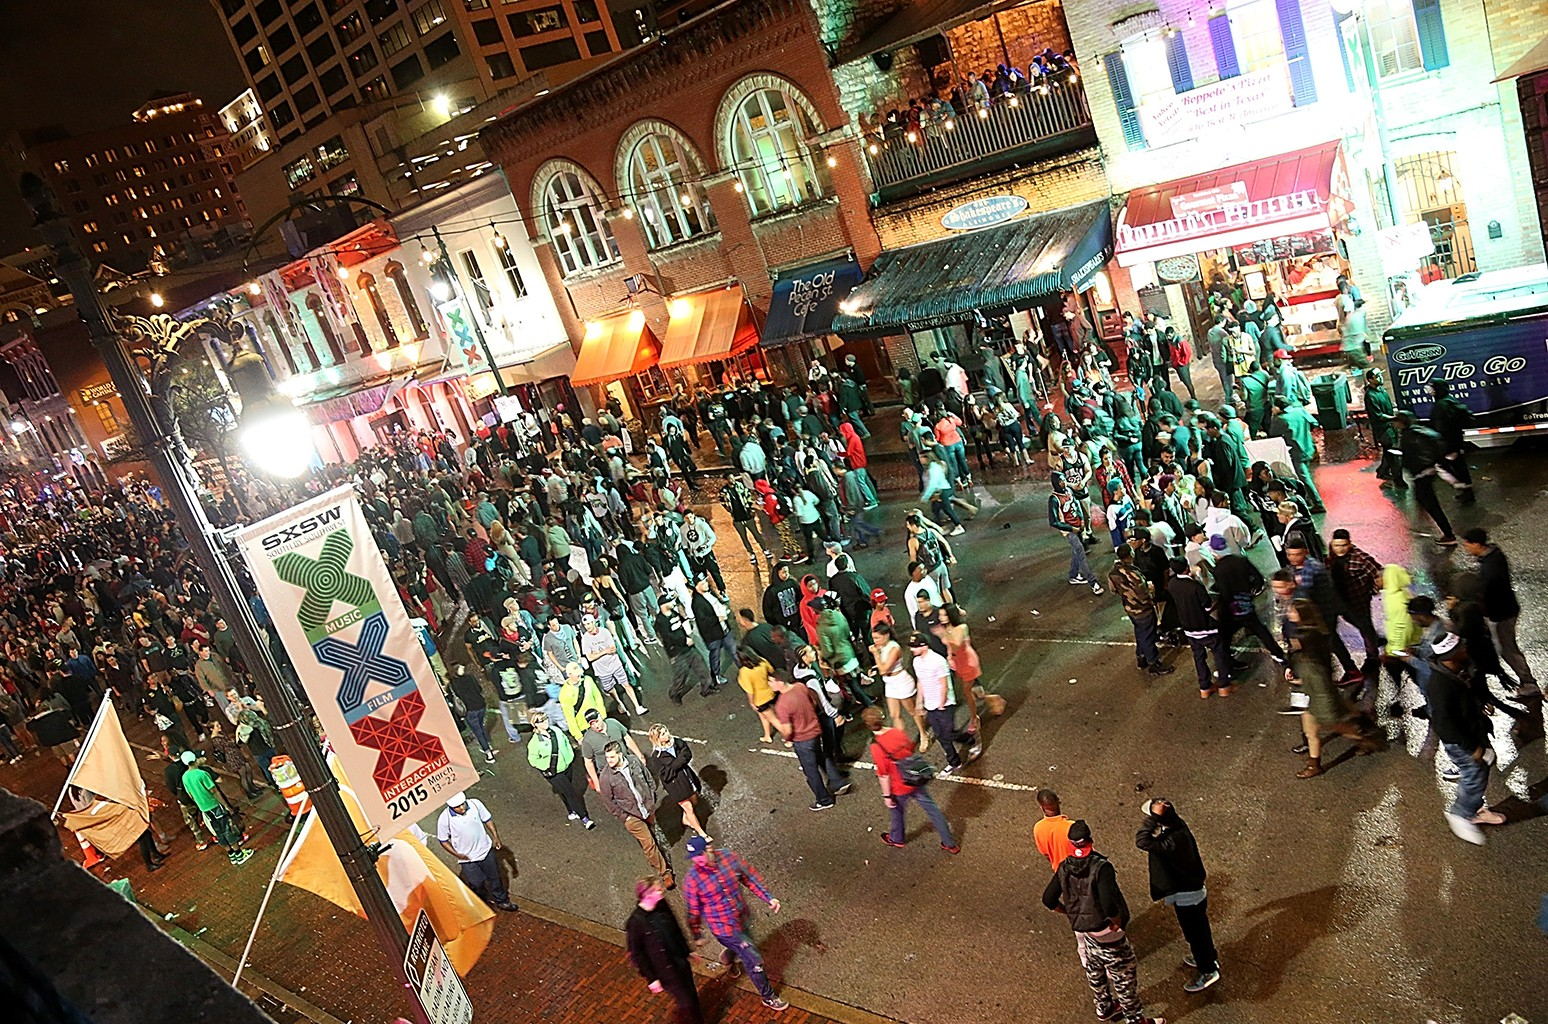 A general view of the atmosphere on 6th street in downtown Austin during the South By Southwest Music Festival on March 20, 2015 in Austin, Texas.